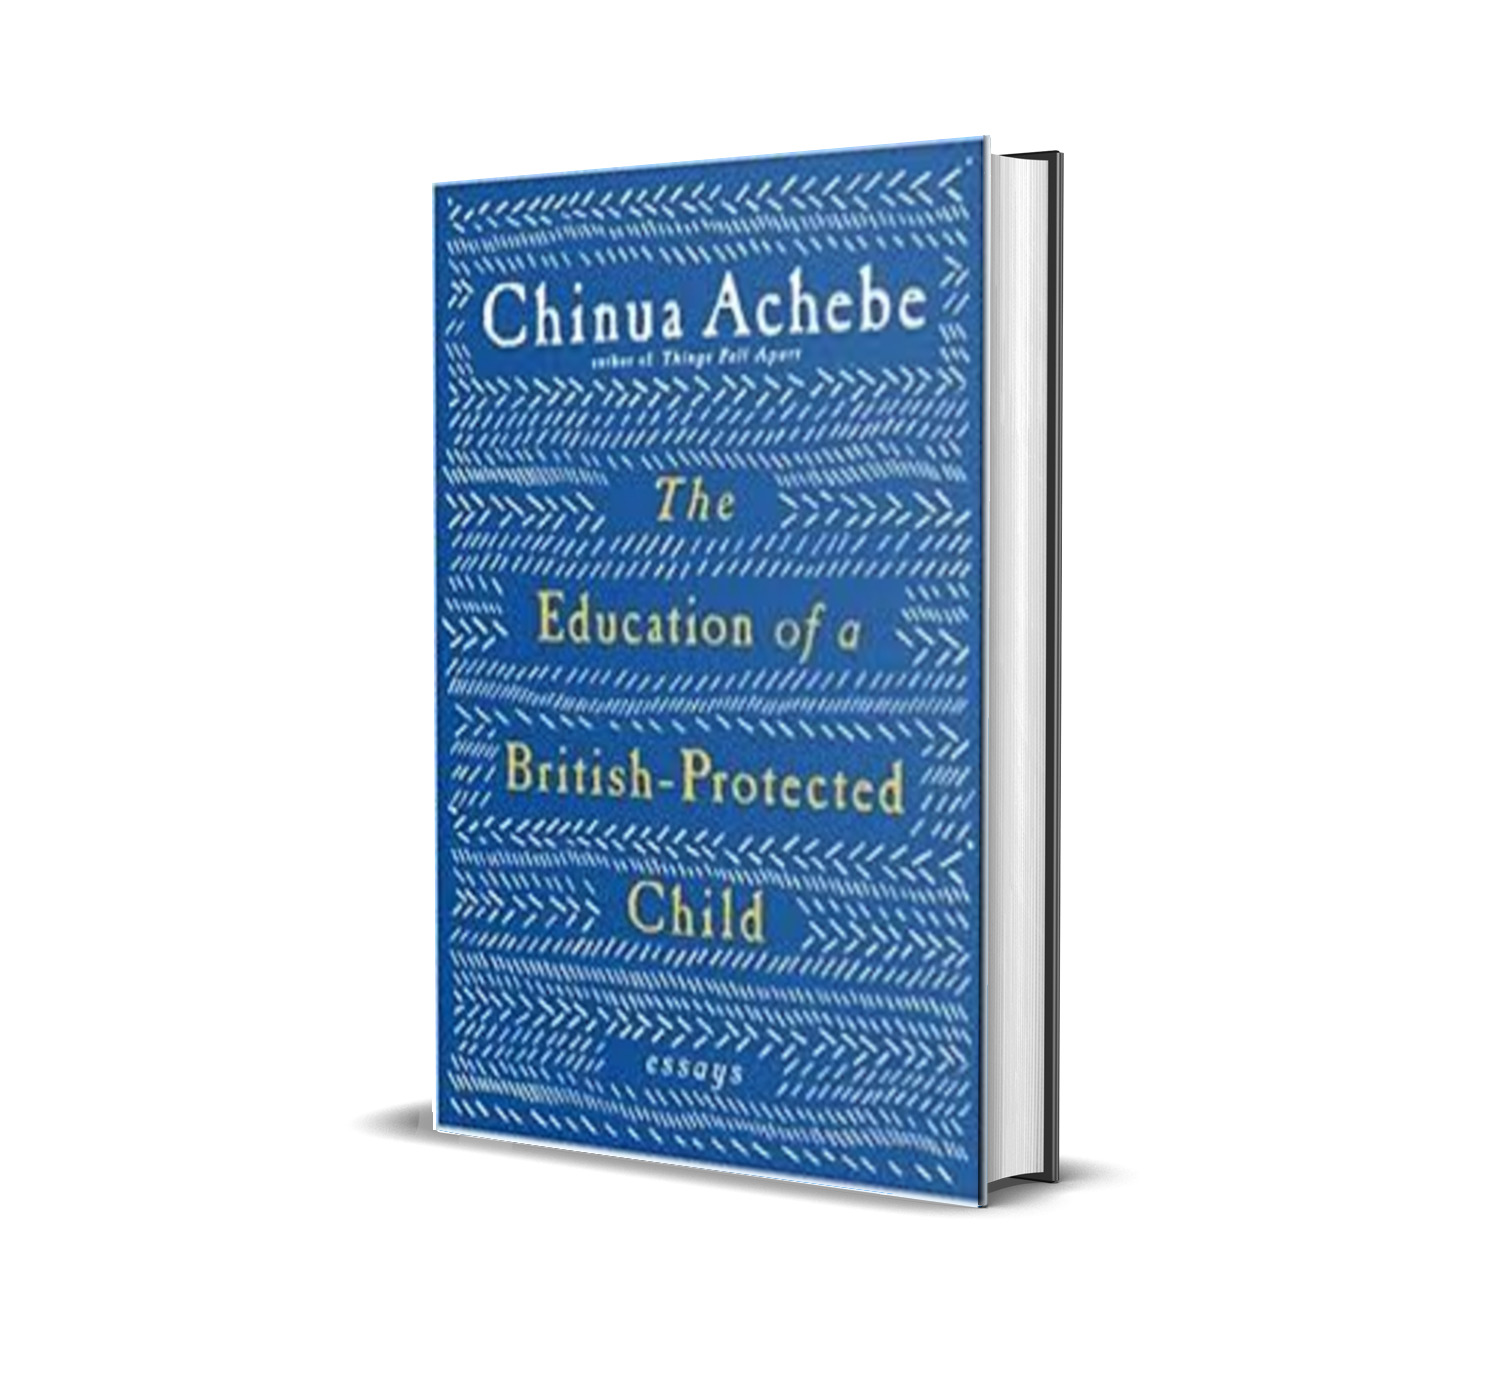 Education of a british-protected child chinua achebe